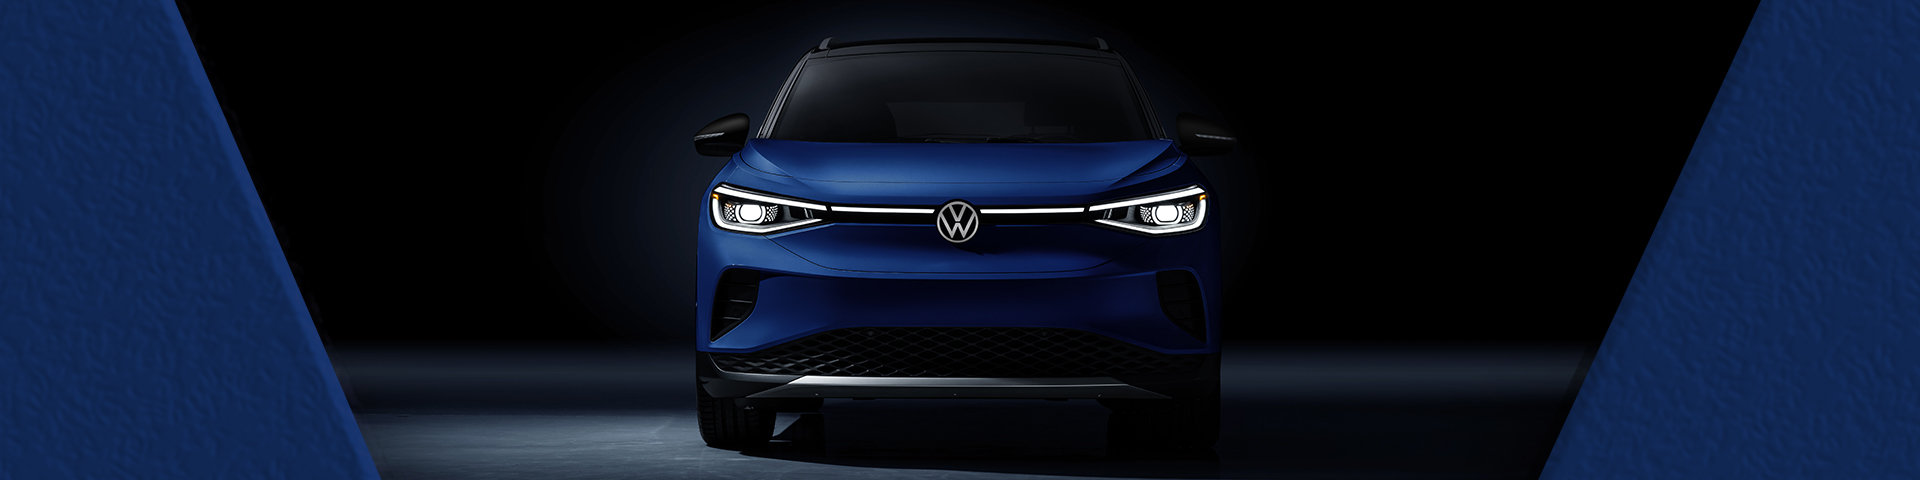 Front profile view of a blue VW I.4